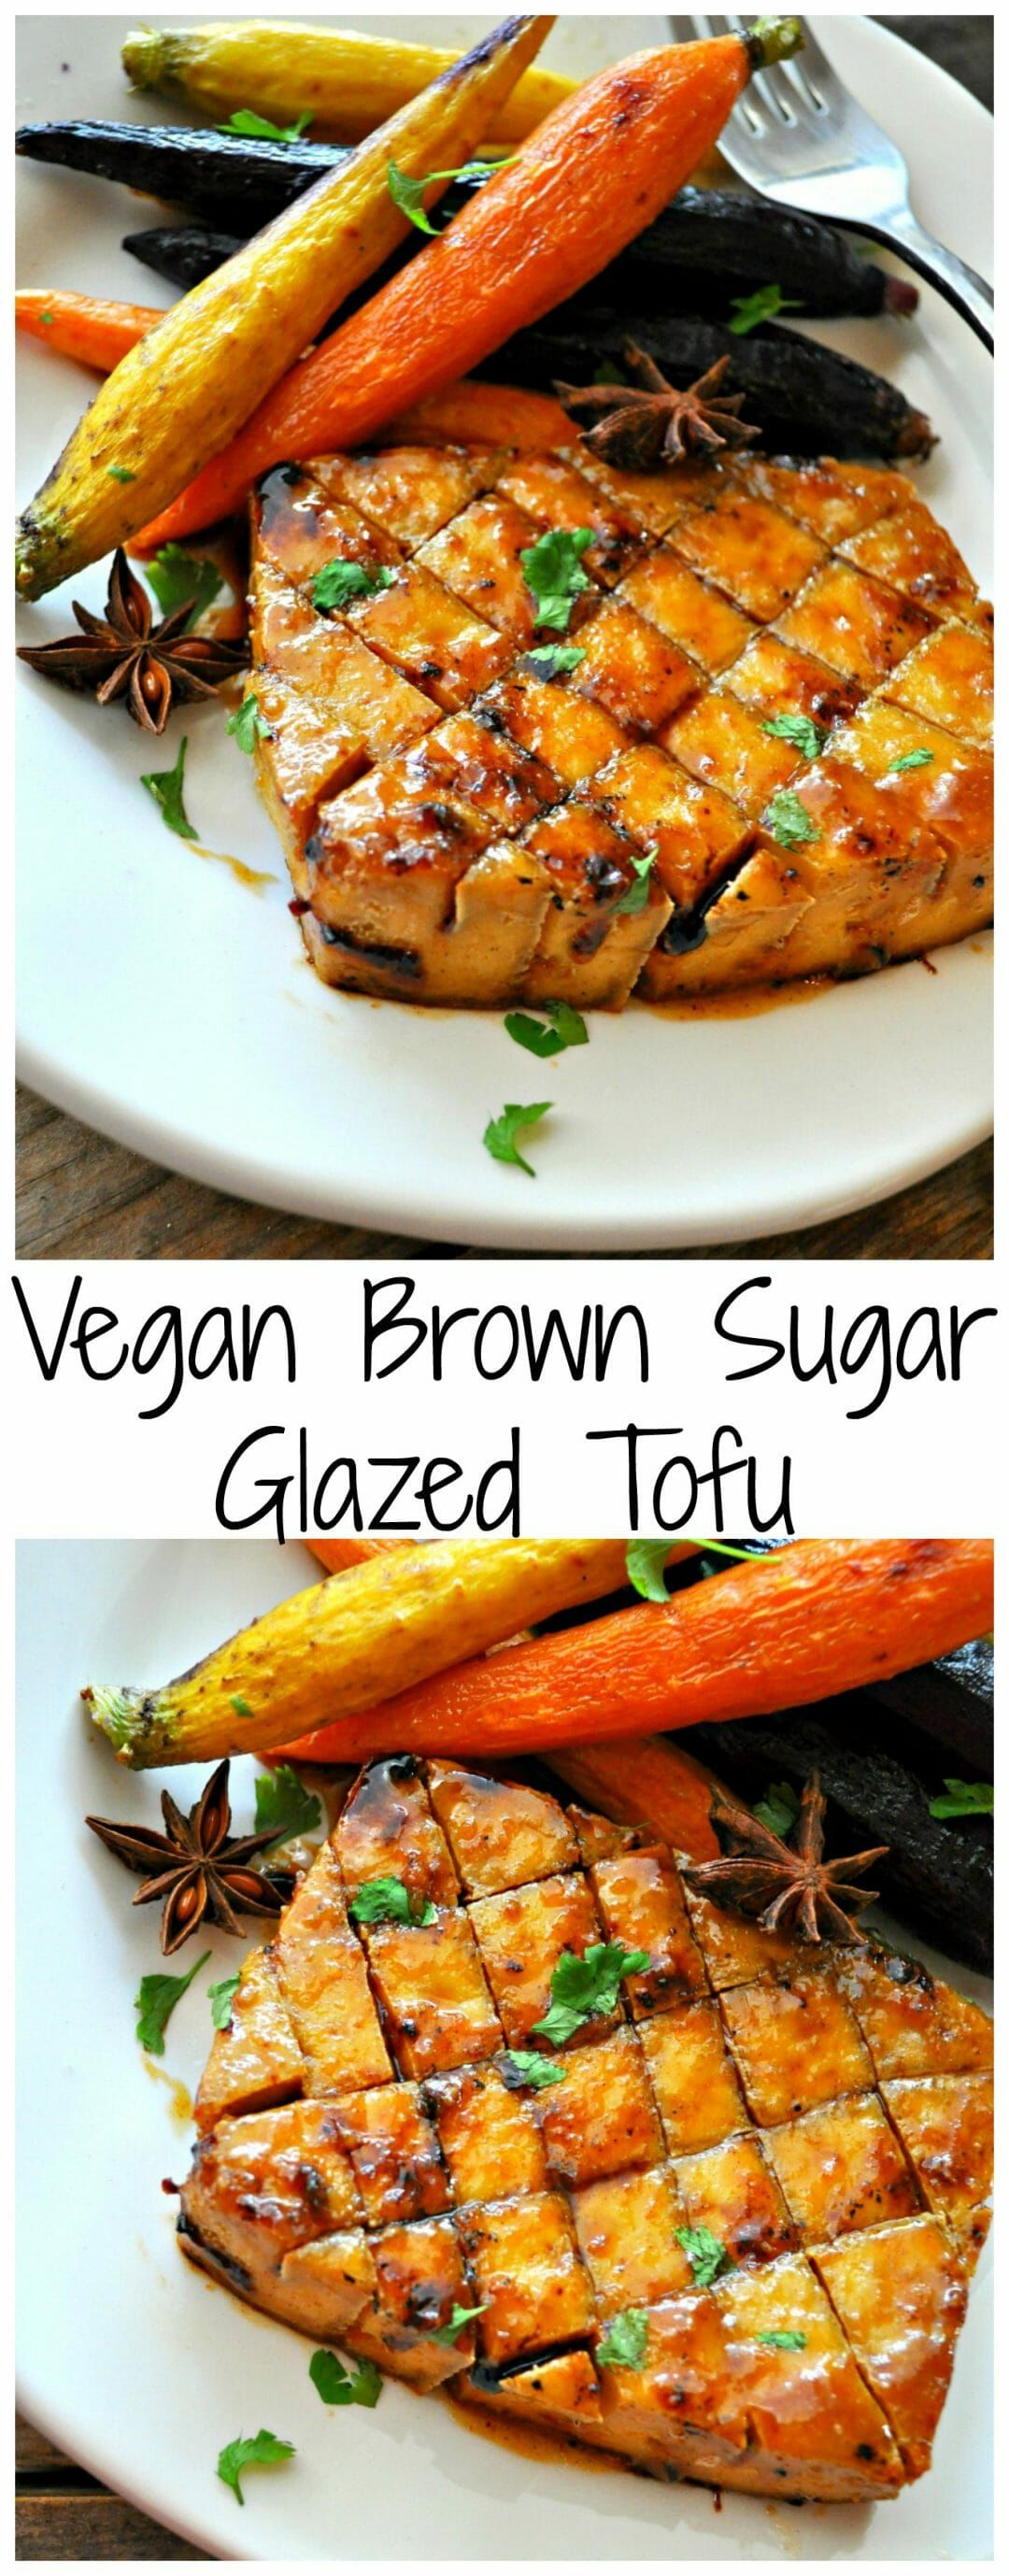 Vegan Brown Sugar Glazed Tofu #brownsugar